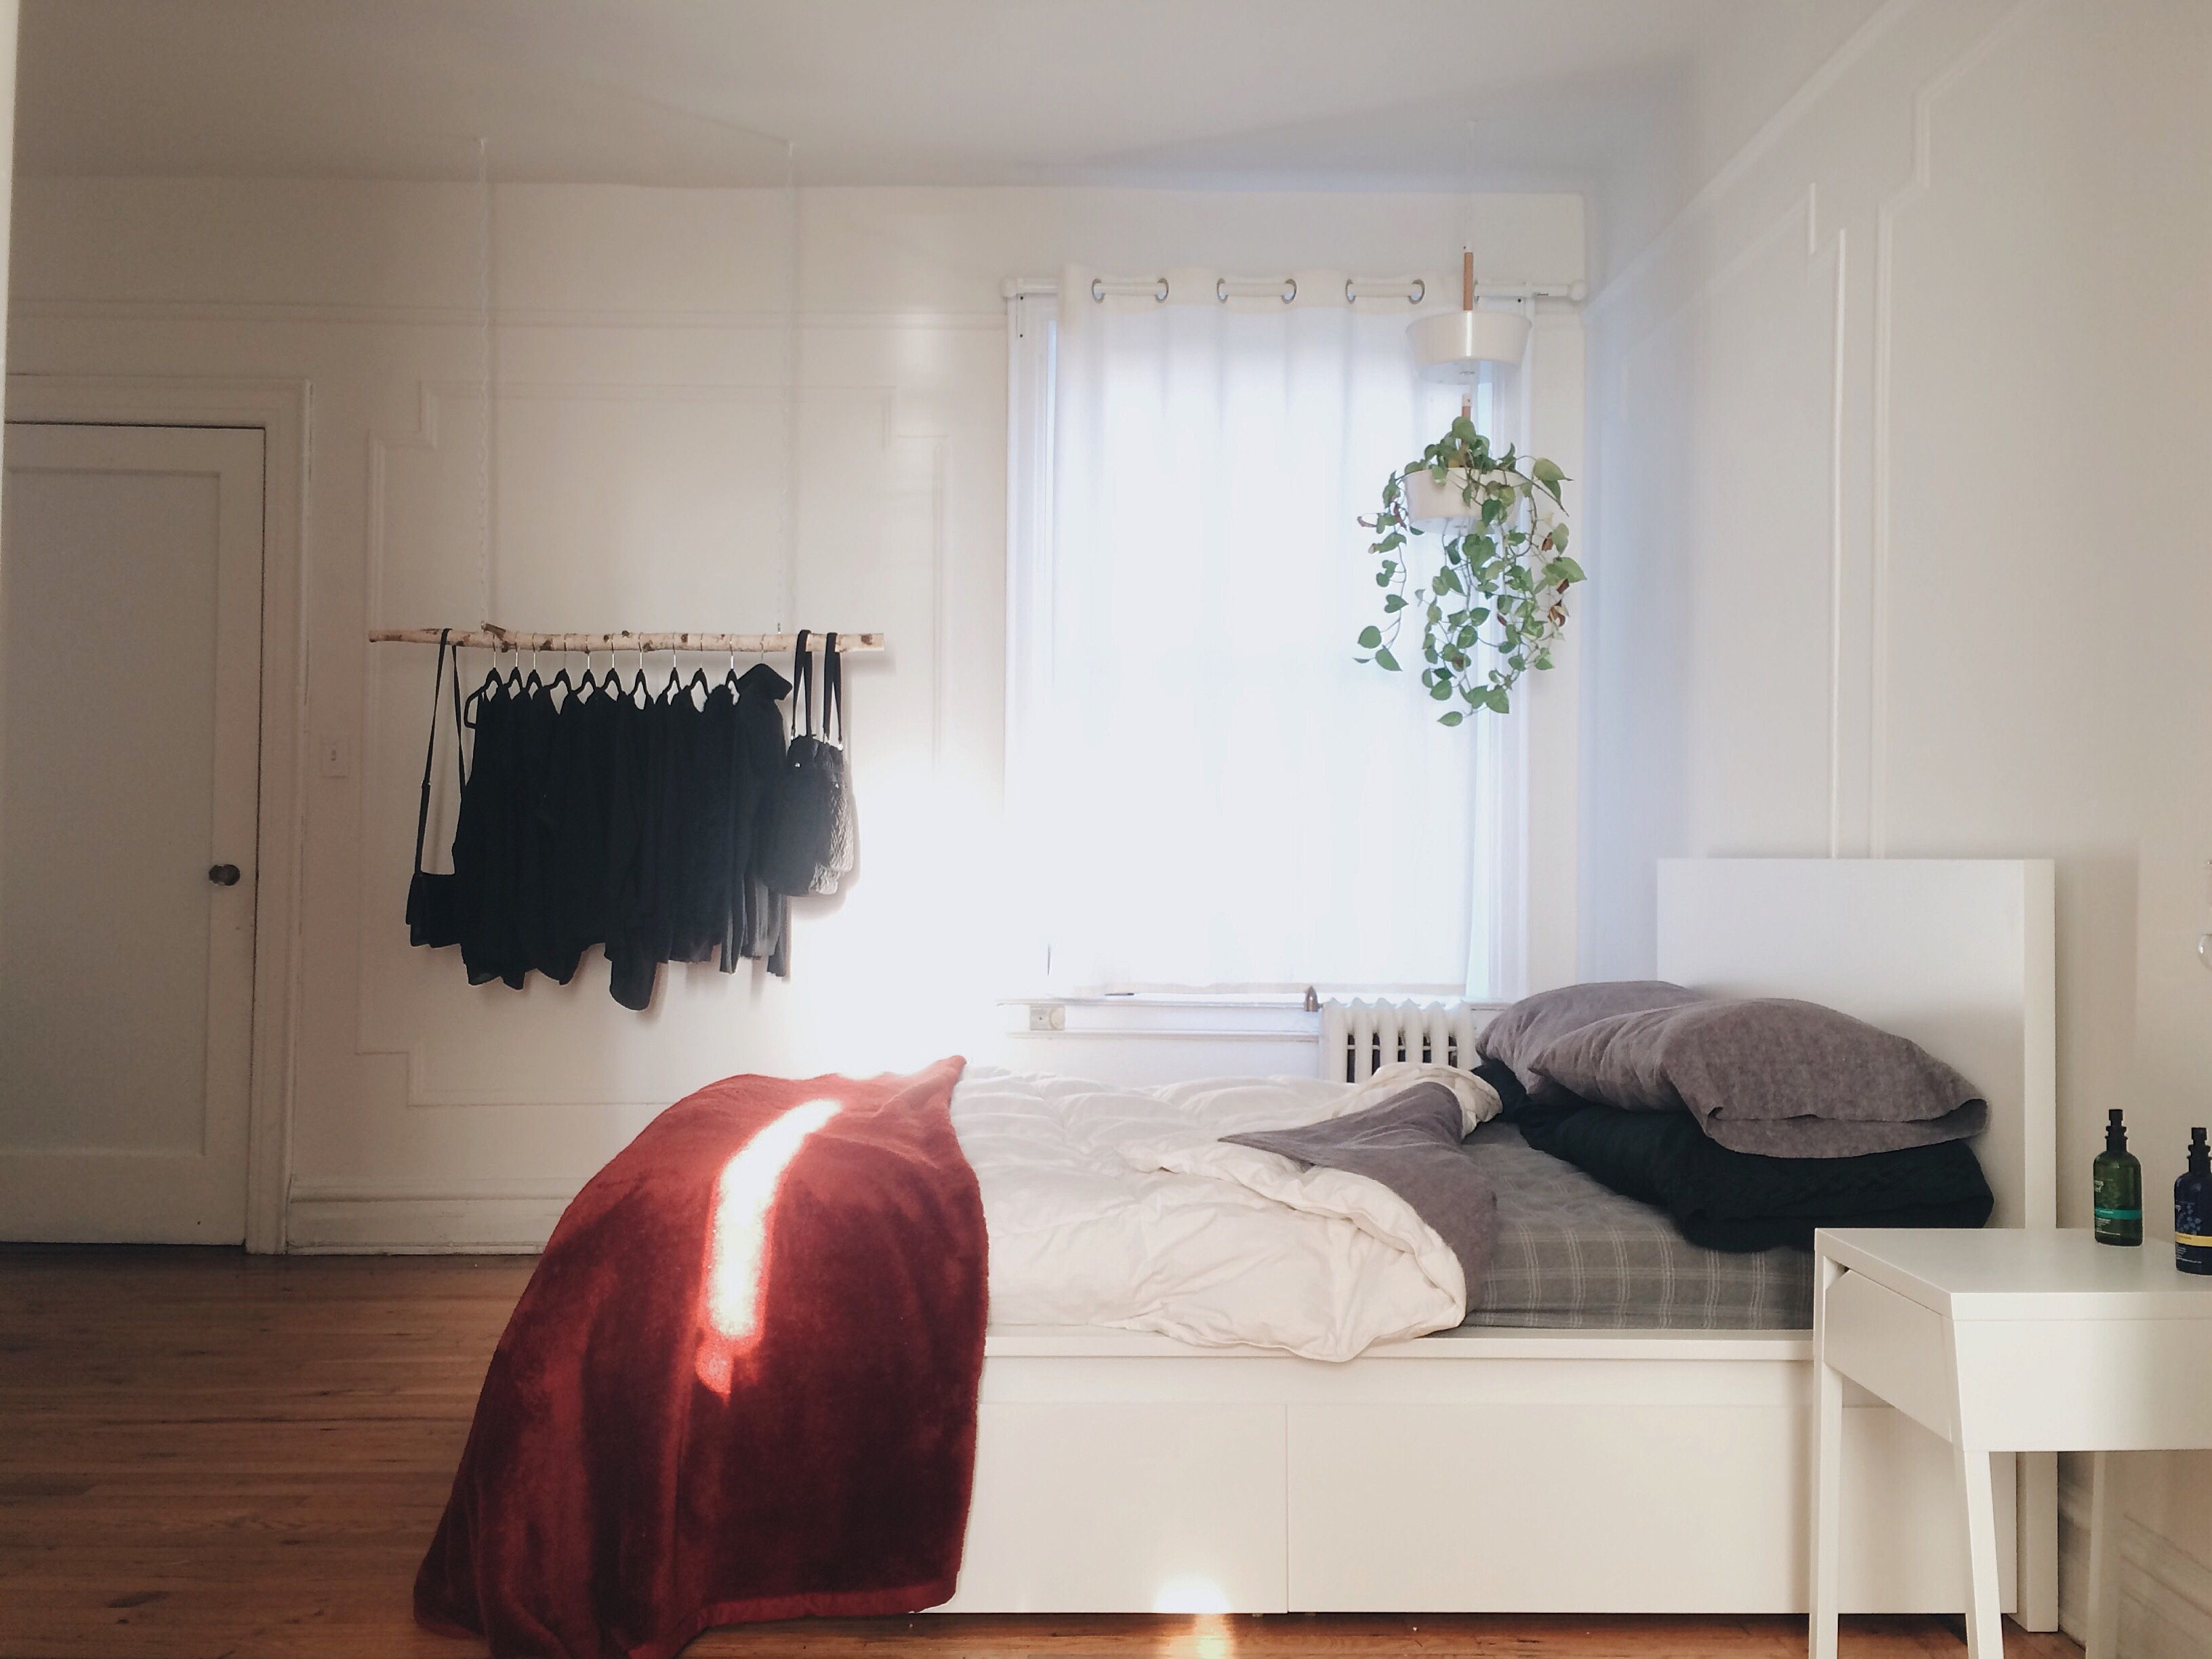 reducing simple minimal clutter bed daily habits